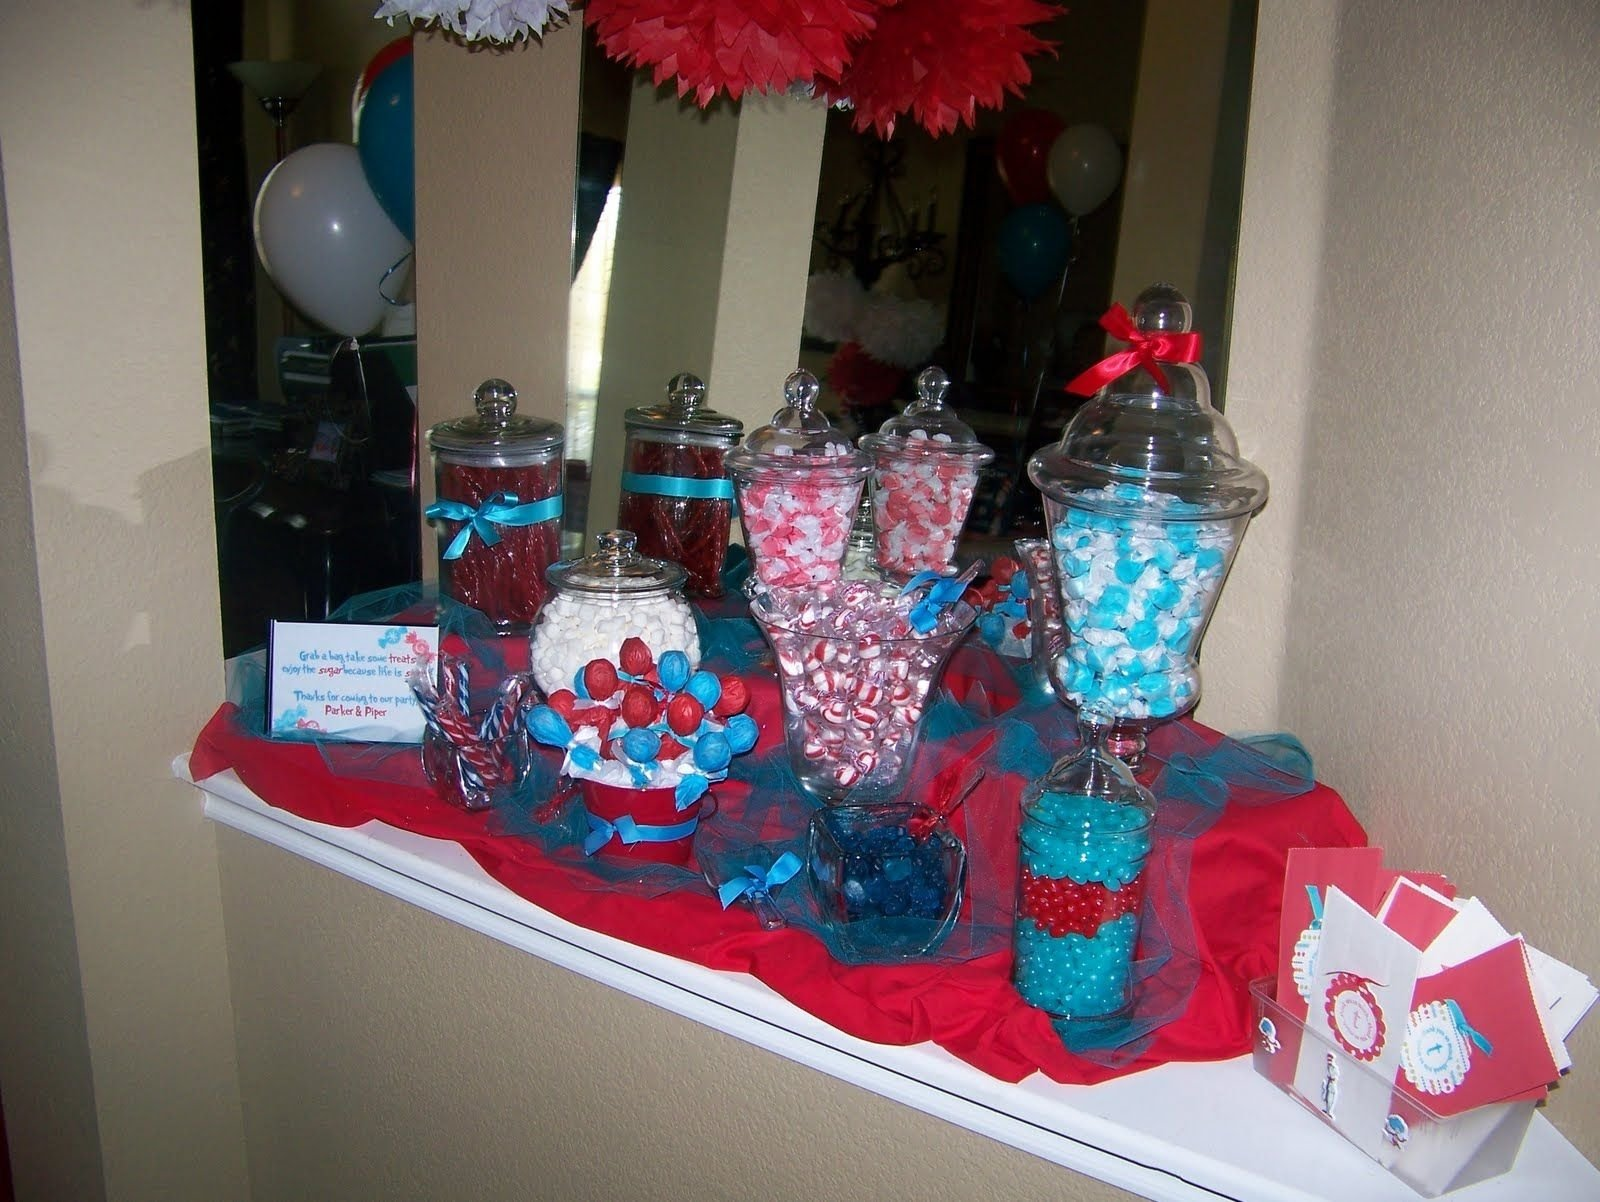 10 Trendy Thing 1 And Thing 2 Party Ideas dr seuss thing 1 thing 2 birthday party birthdays dr seuss 2020